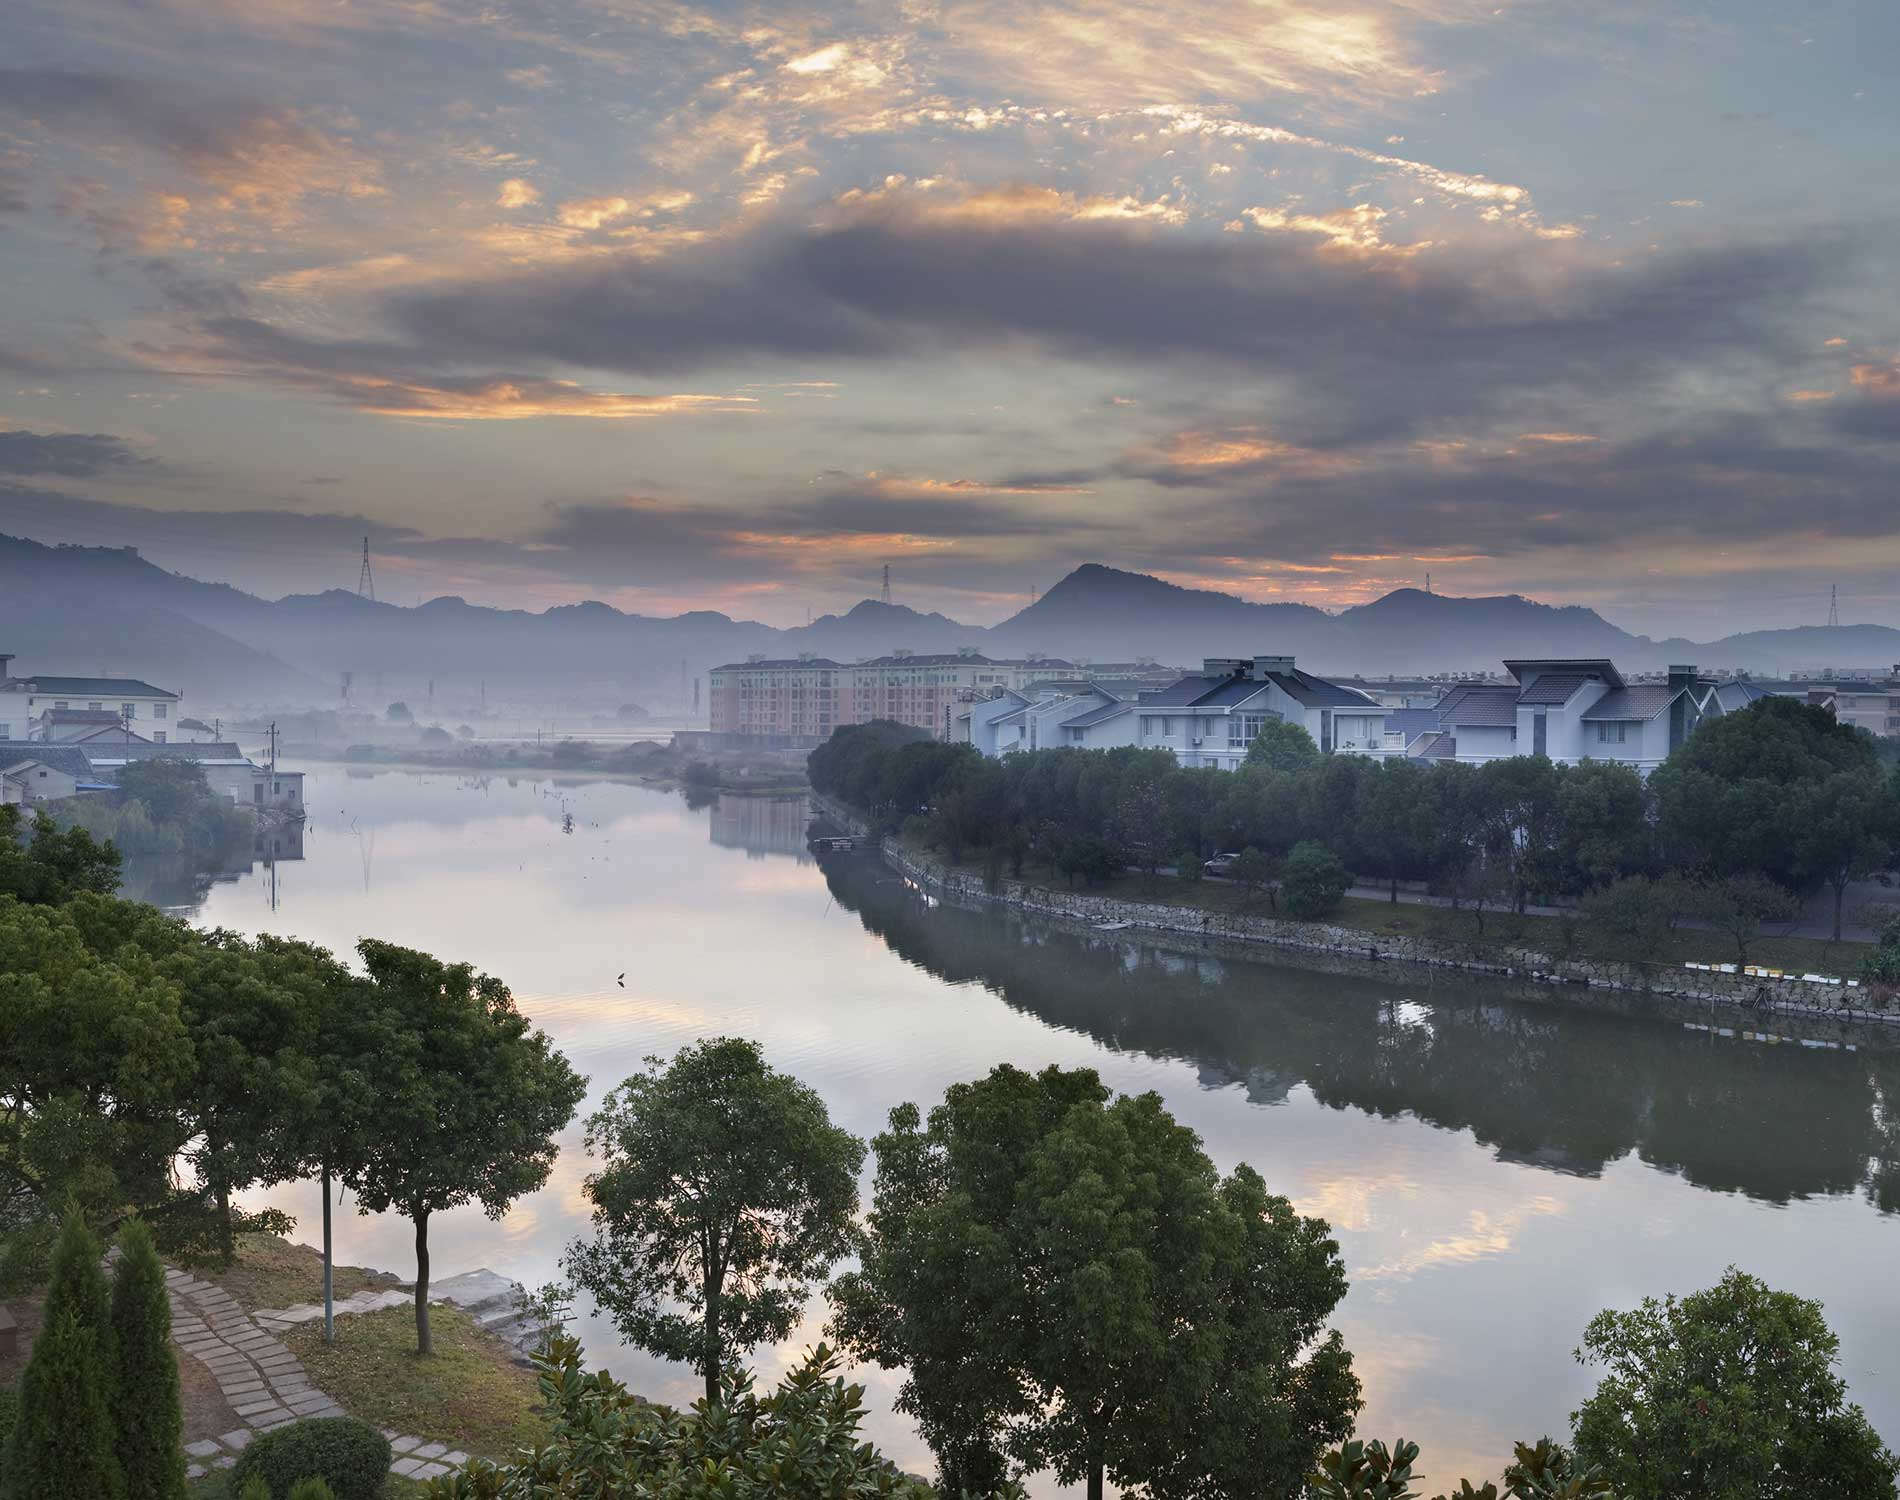 /-/media/images/website/background-images/offices/wenzhou/wenzhou_city_1900x1500px.ashx